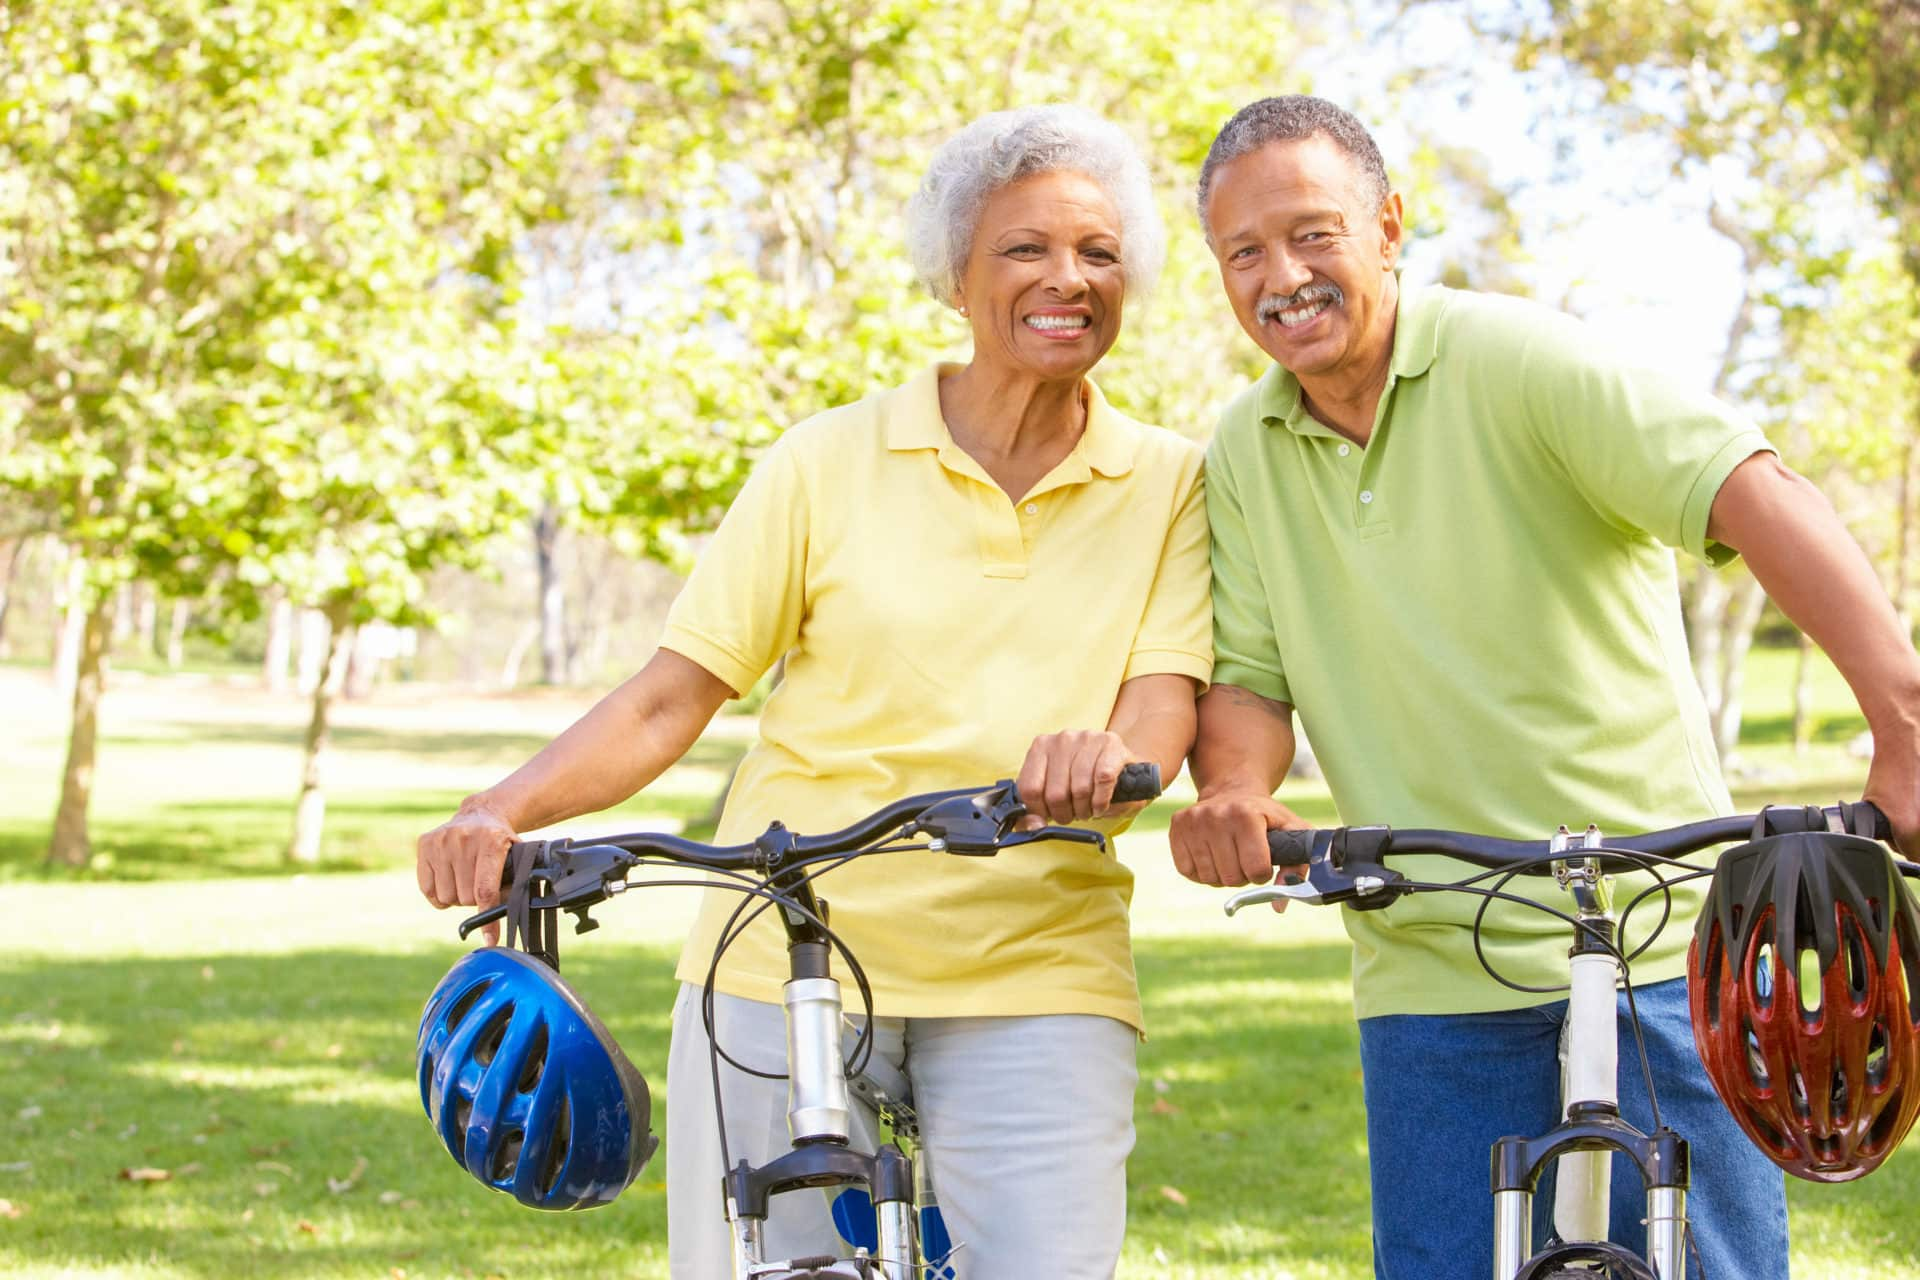 Smiling senior couple financial fraud solutions